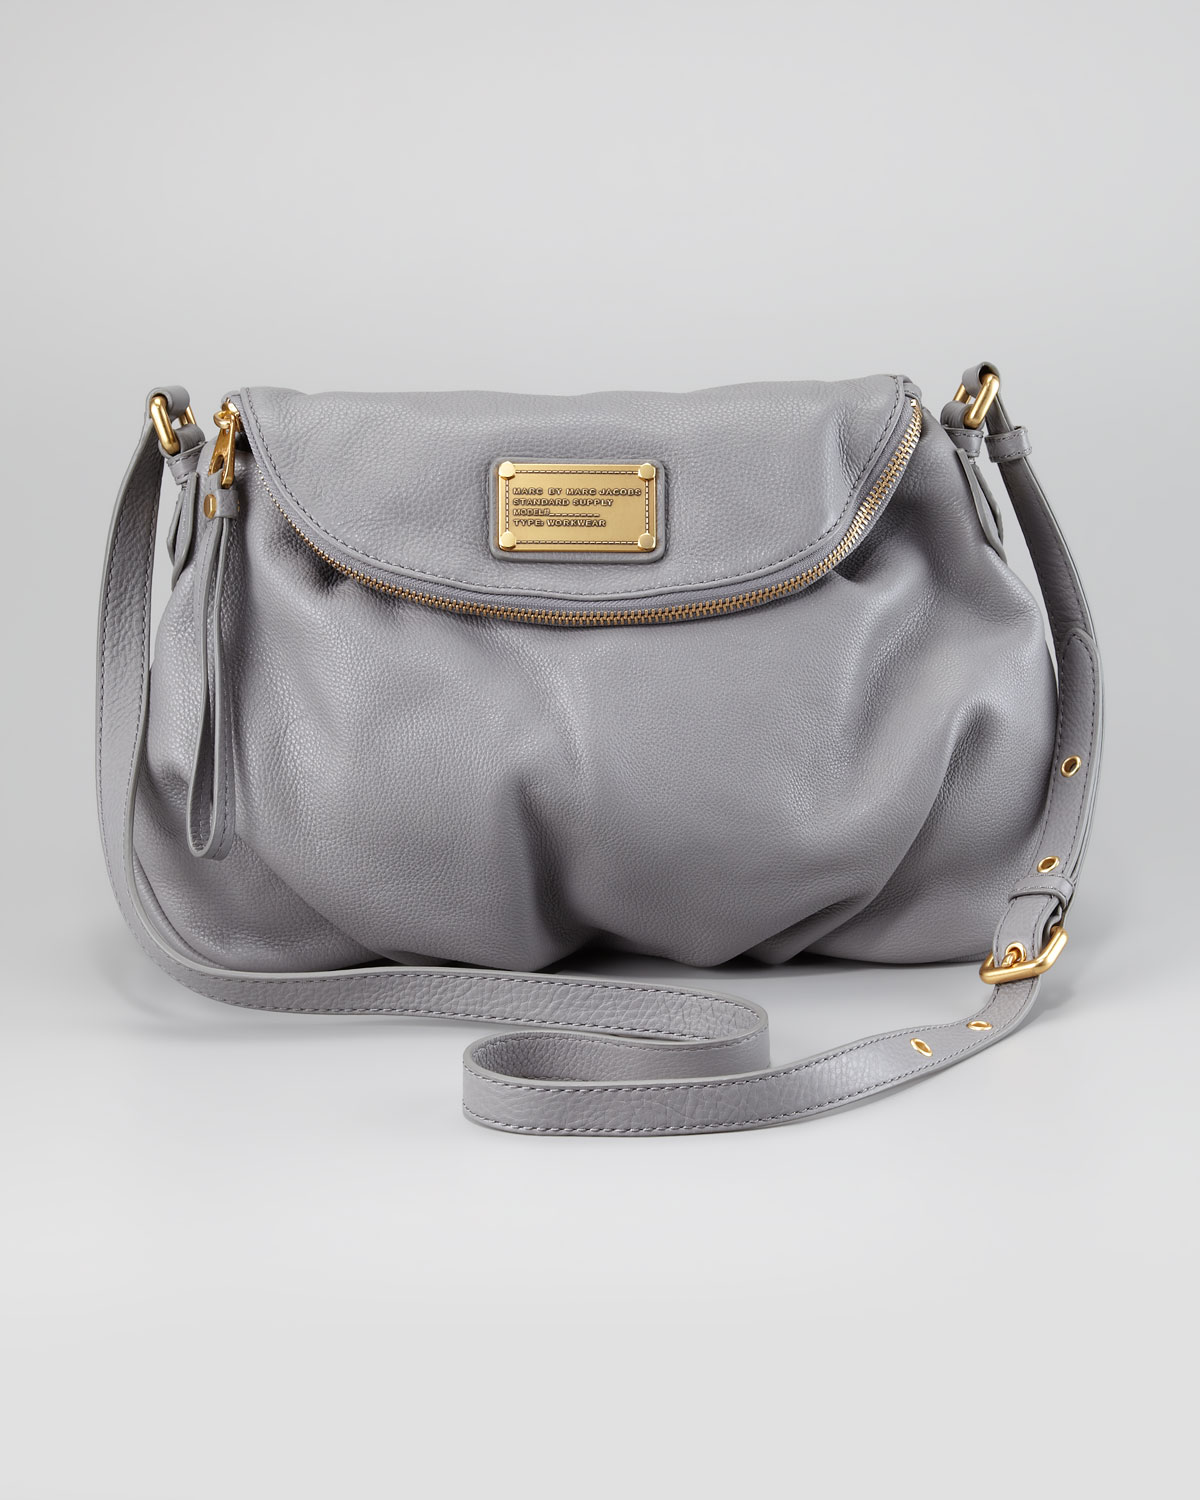 Gallery Previously Sold At Neiman Marcus Women S Marc Jacobs Natasha